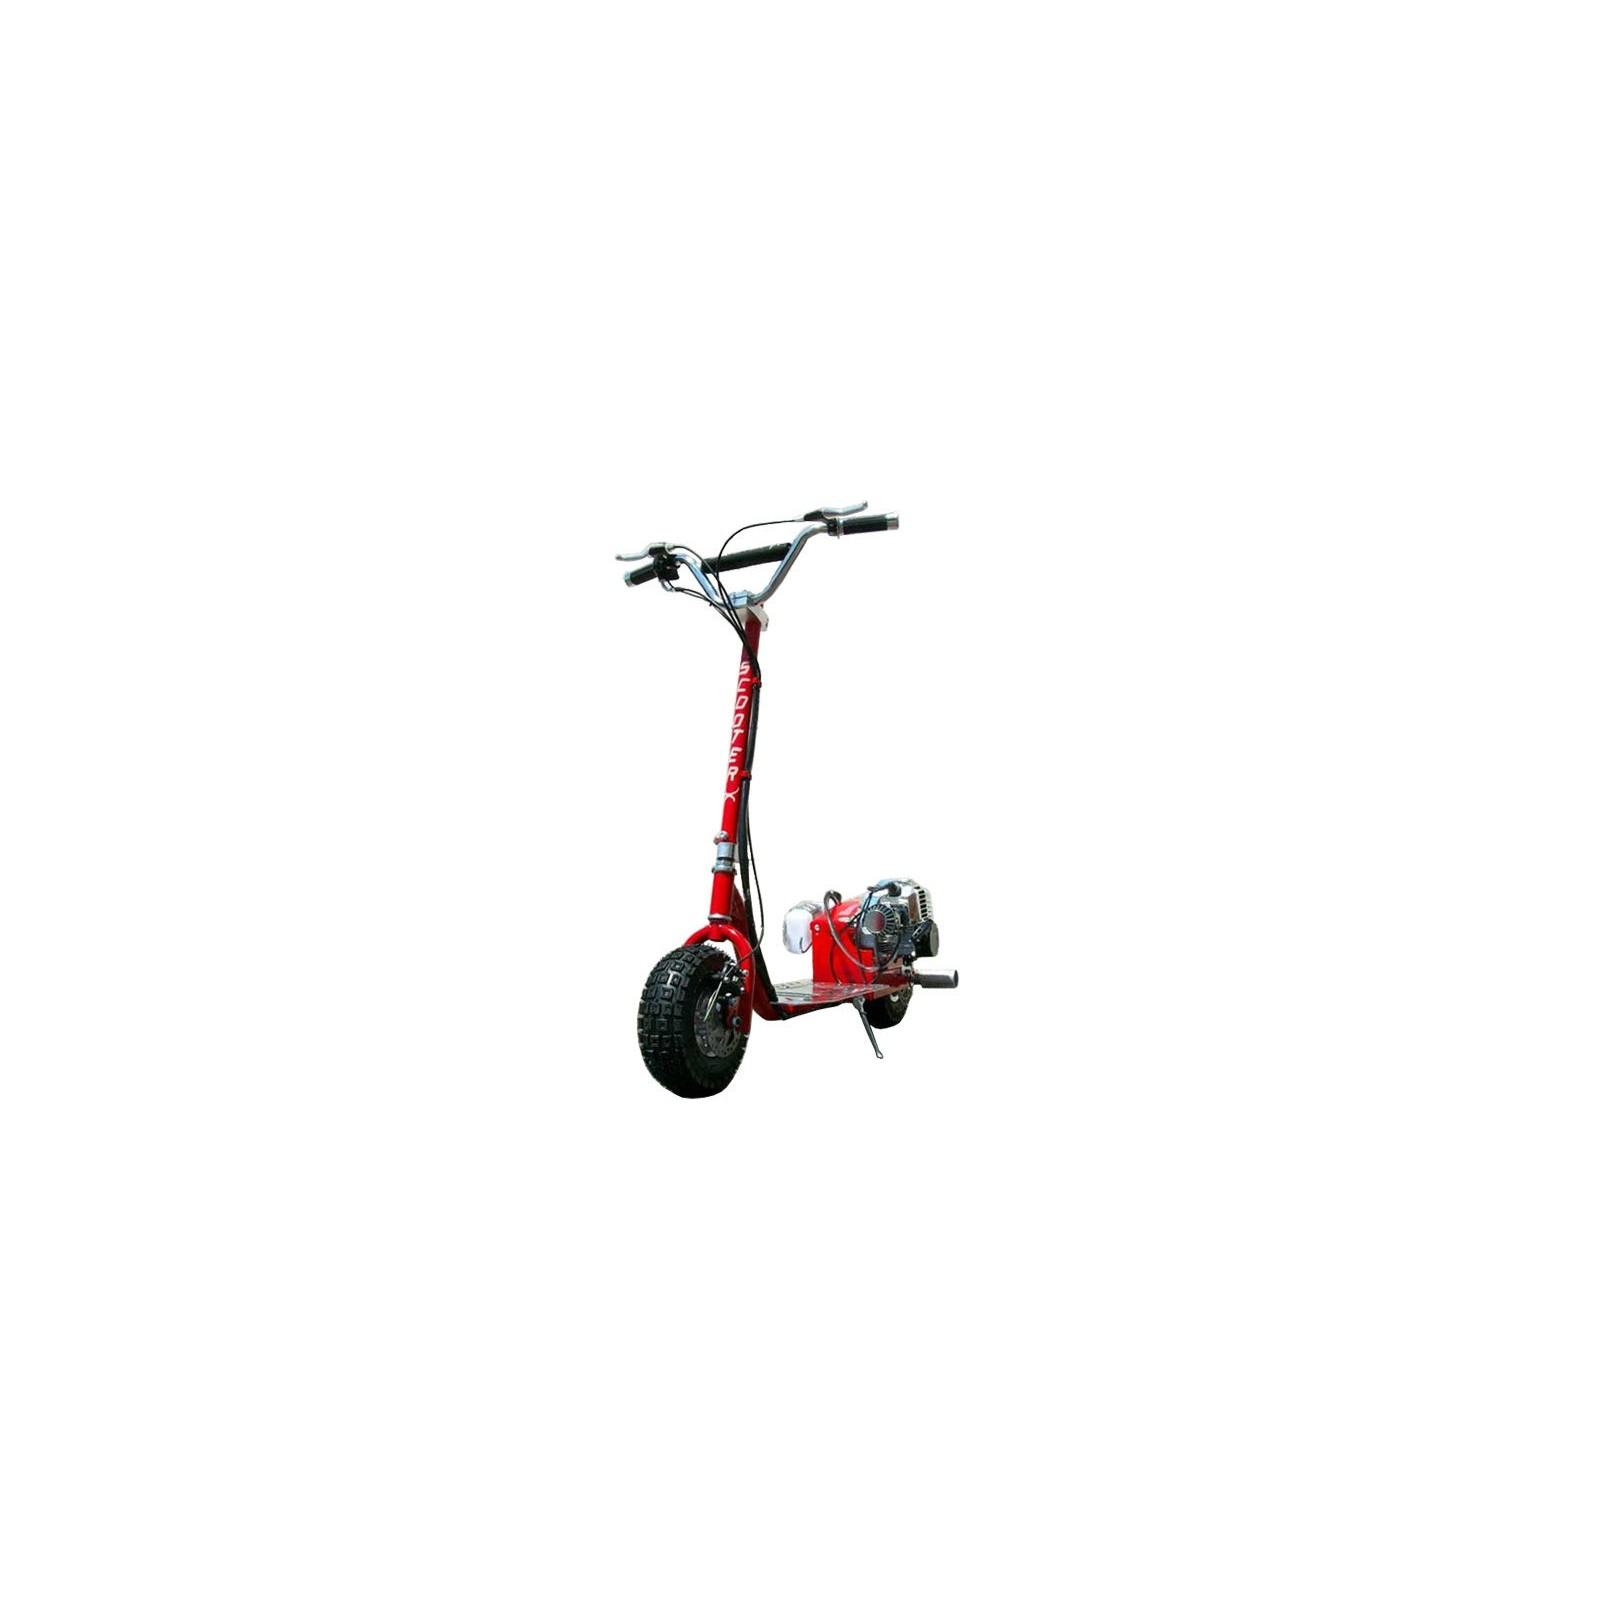 ScooterX Dirt Dog 49cc Gas Powered Scooter with speeds up to